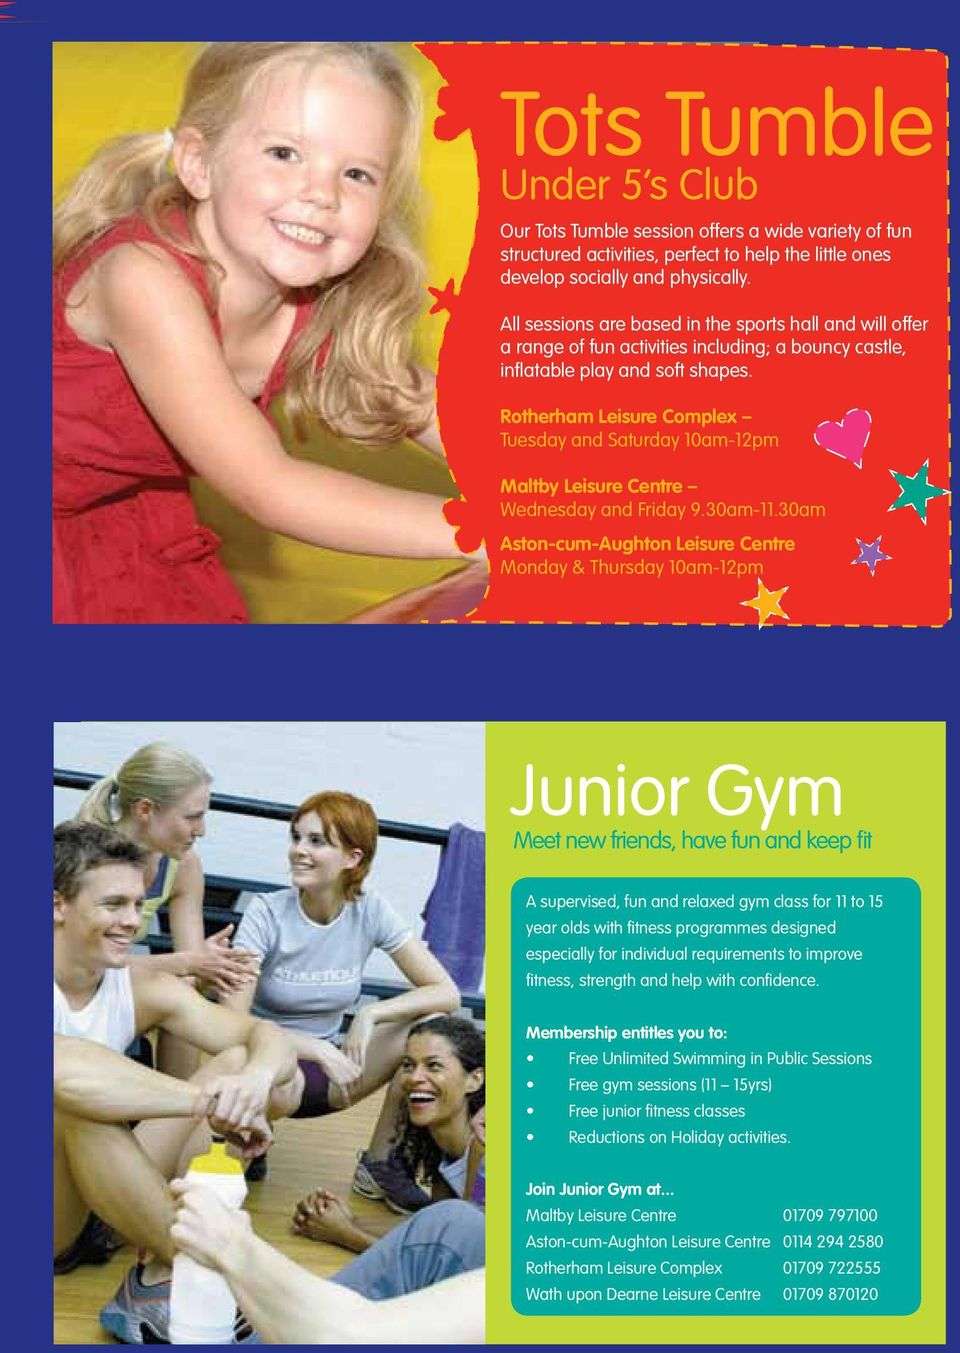 Rotherham Leisure Complex Tuesday and Saturday 10am-12pm Maltby Leisure Centre Wednesday and Friday 9.30am-11.